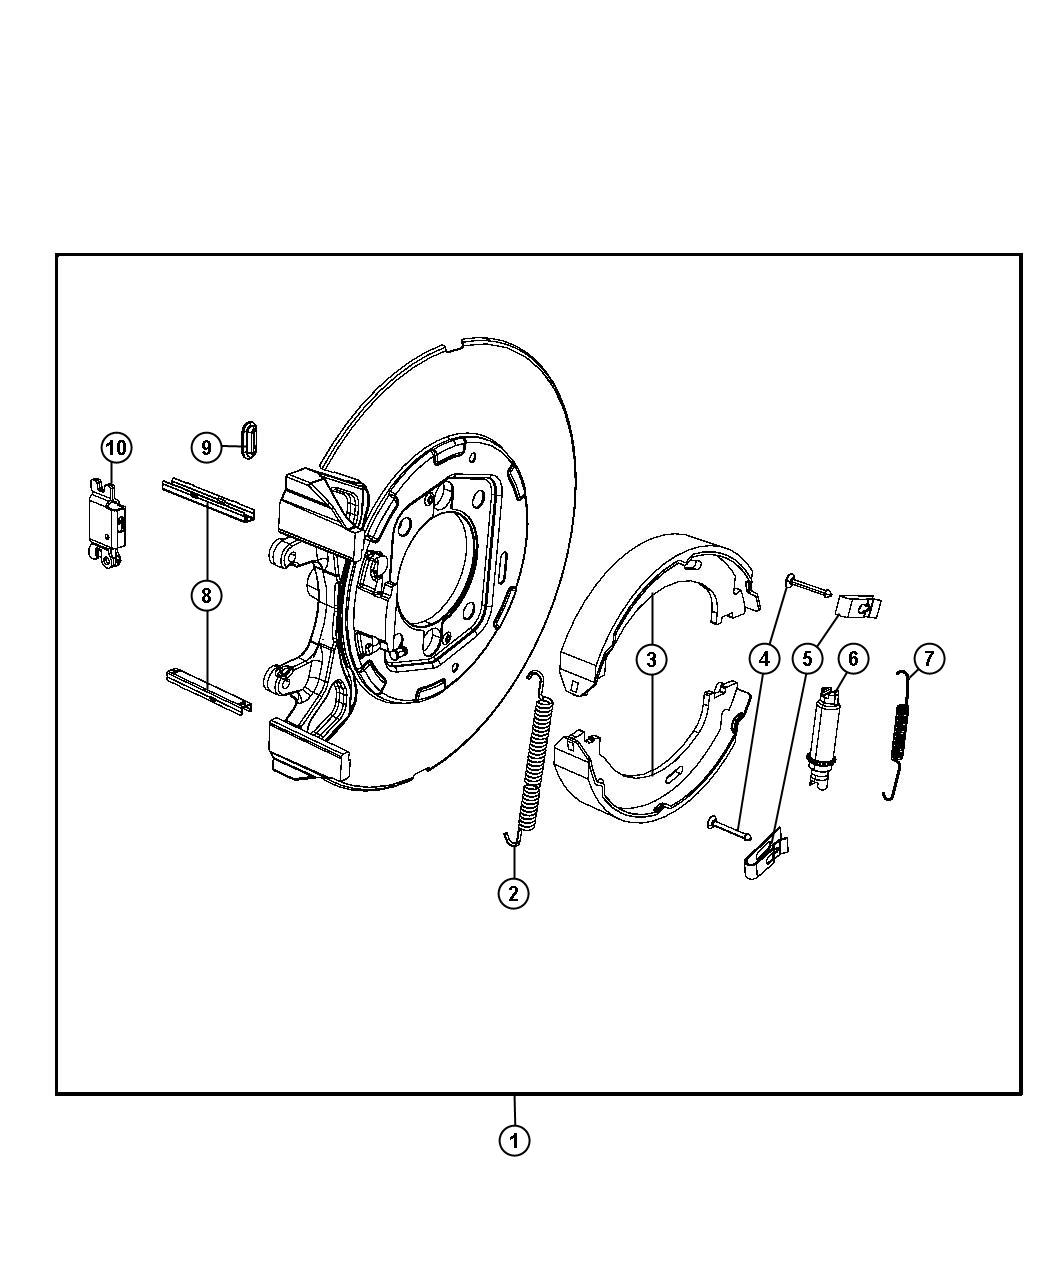 2013 Dodge Charger Adapter, adapter assembly. Parking